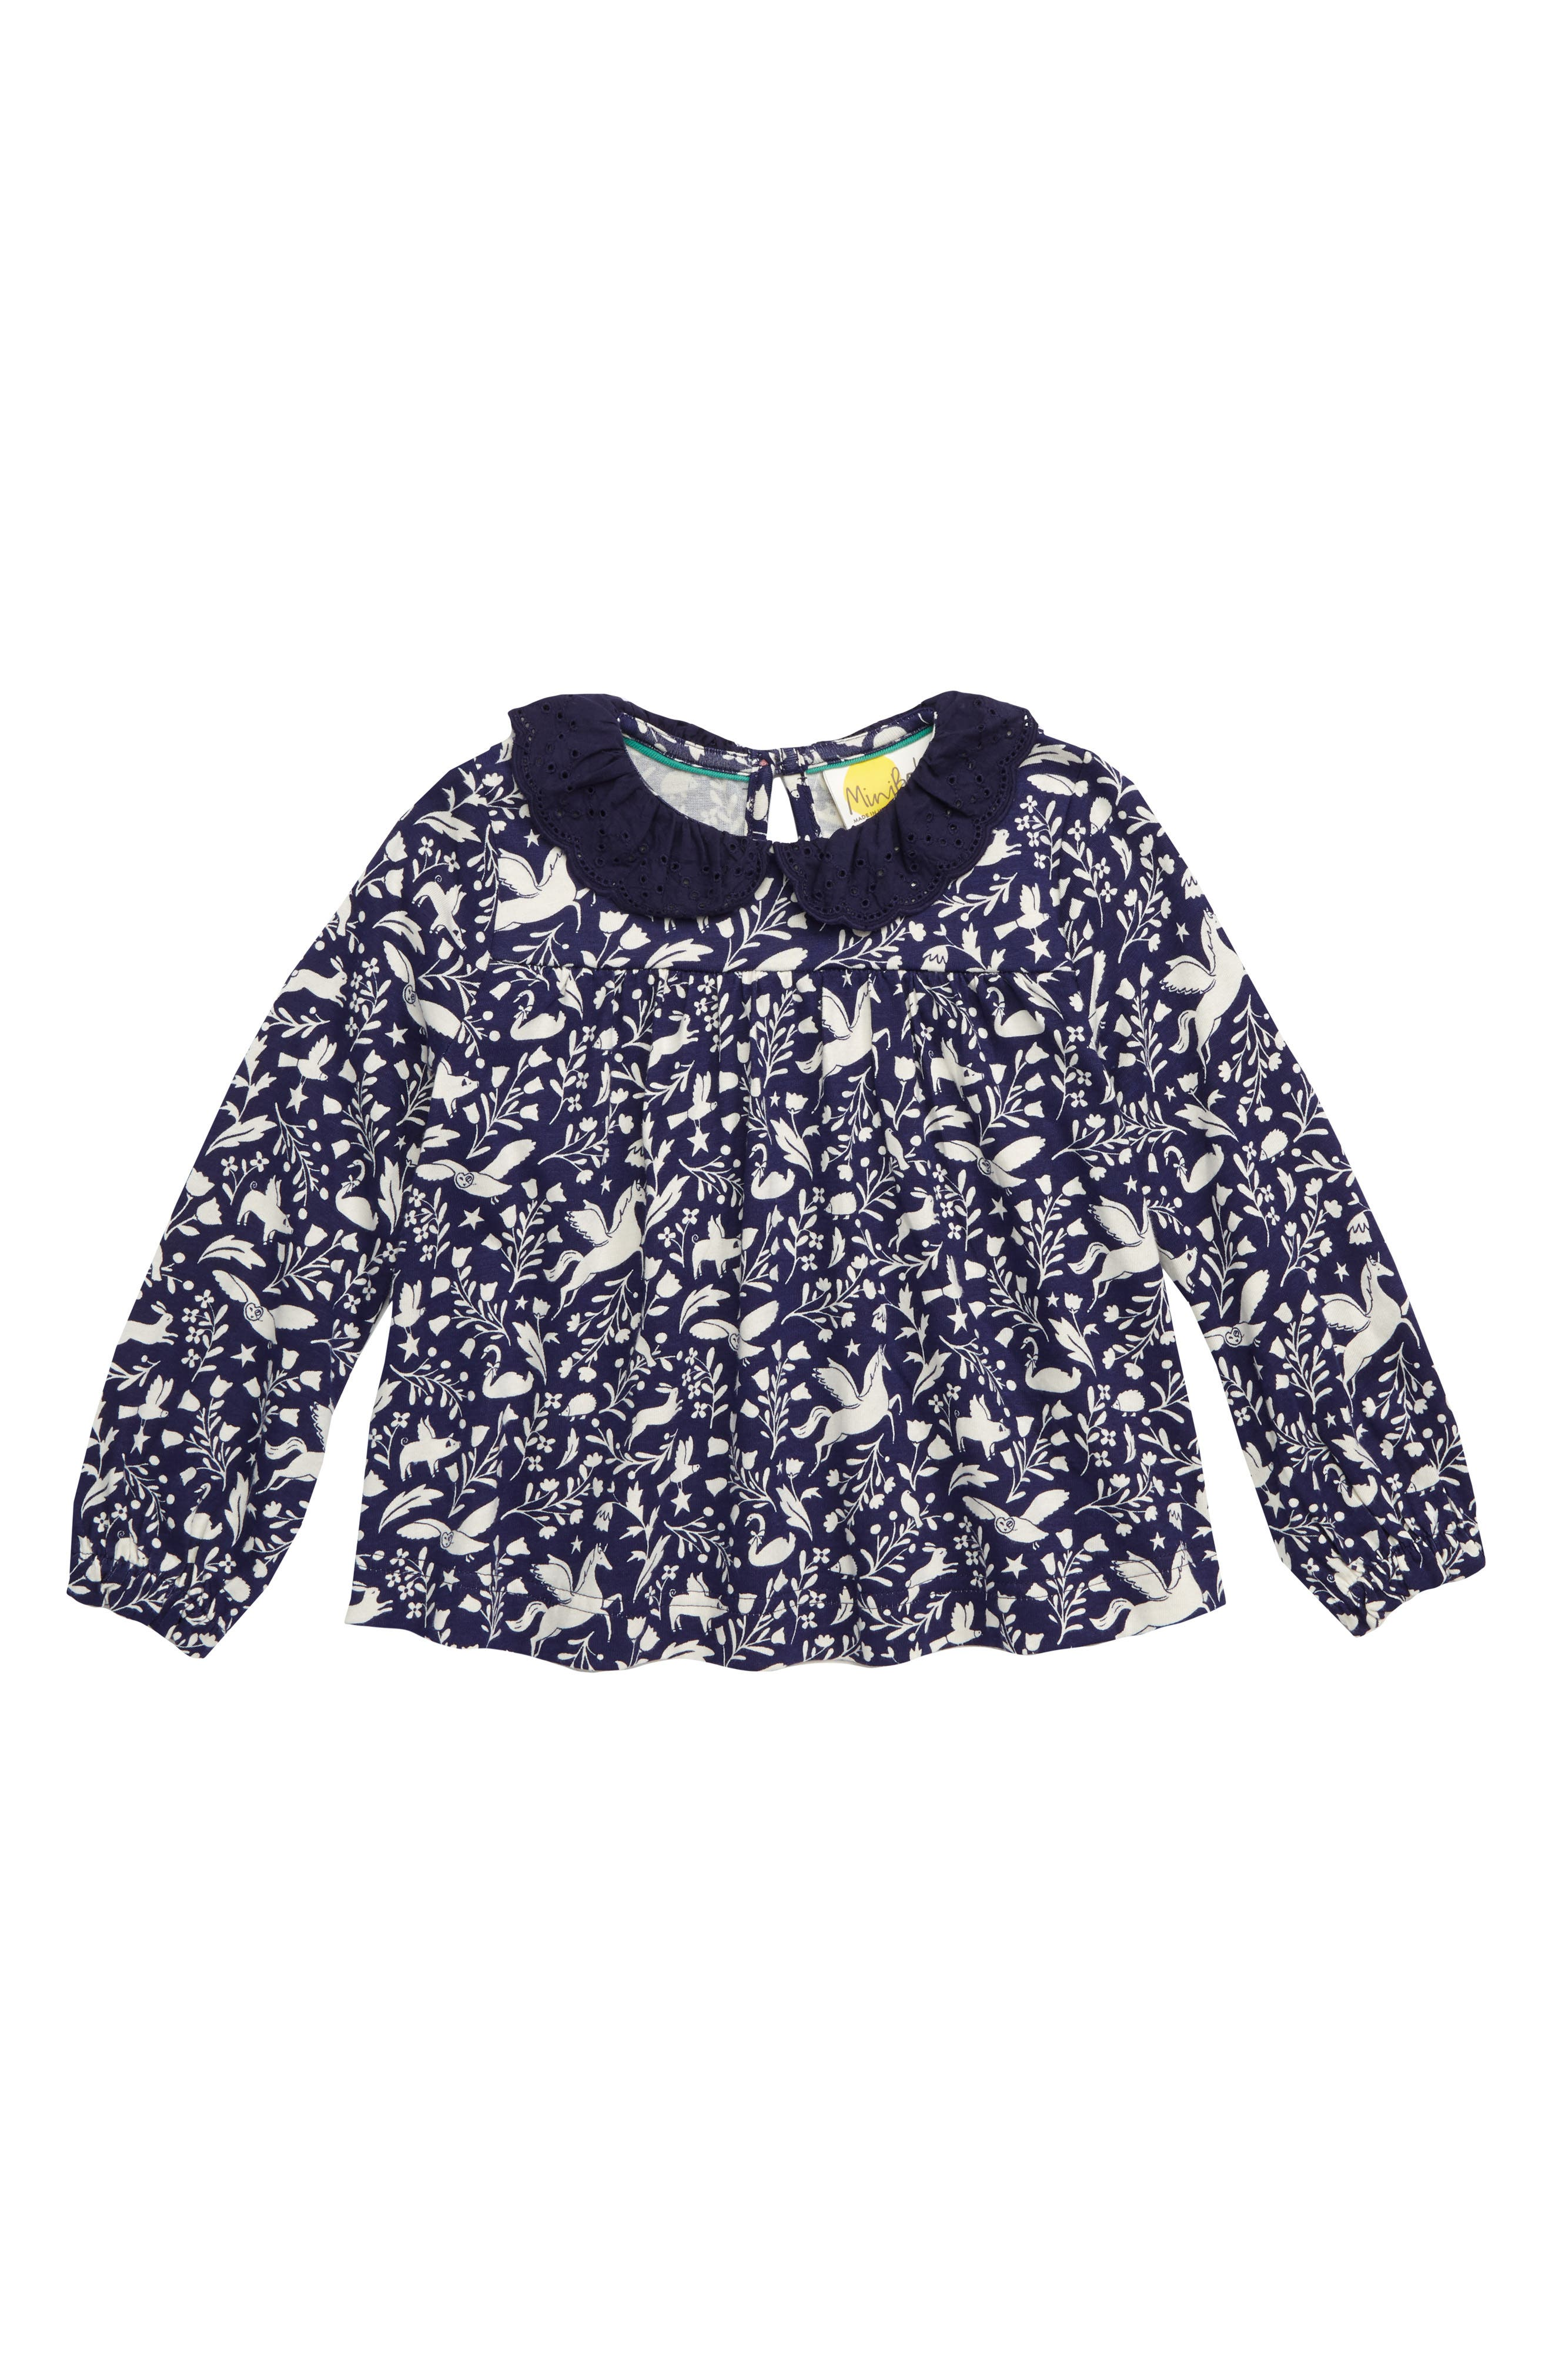 Broderie Collar Top,                         Main,                         color, NAVY PRUSSIAN BLUE PEC PETS